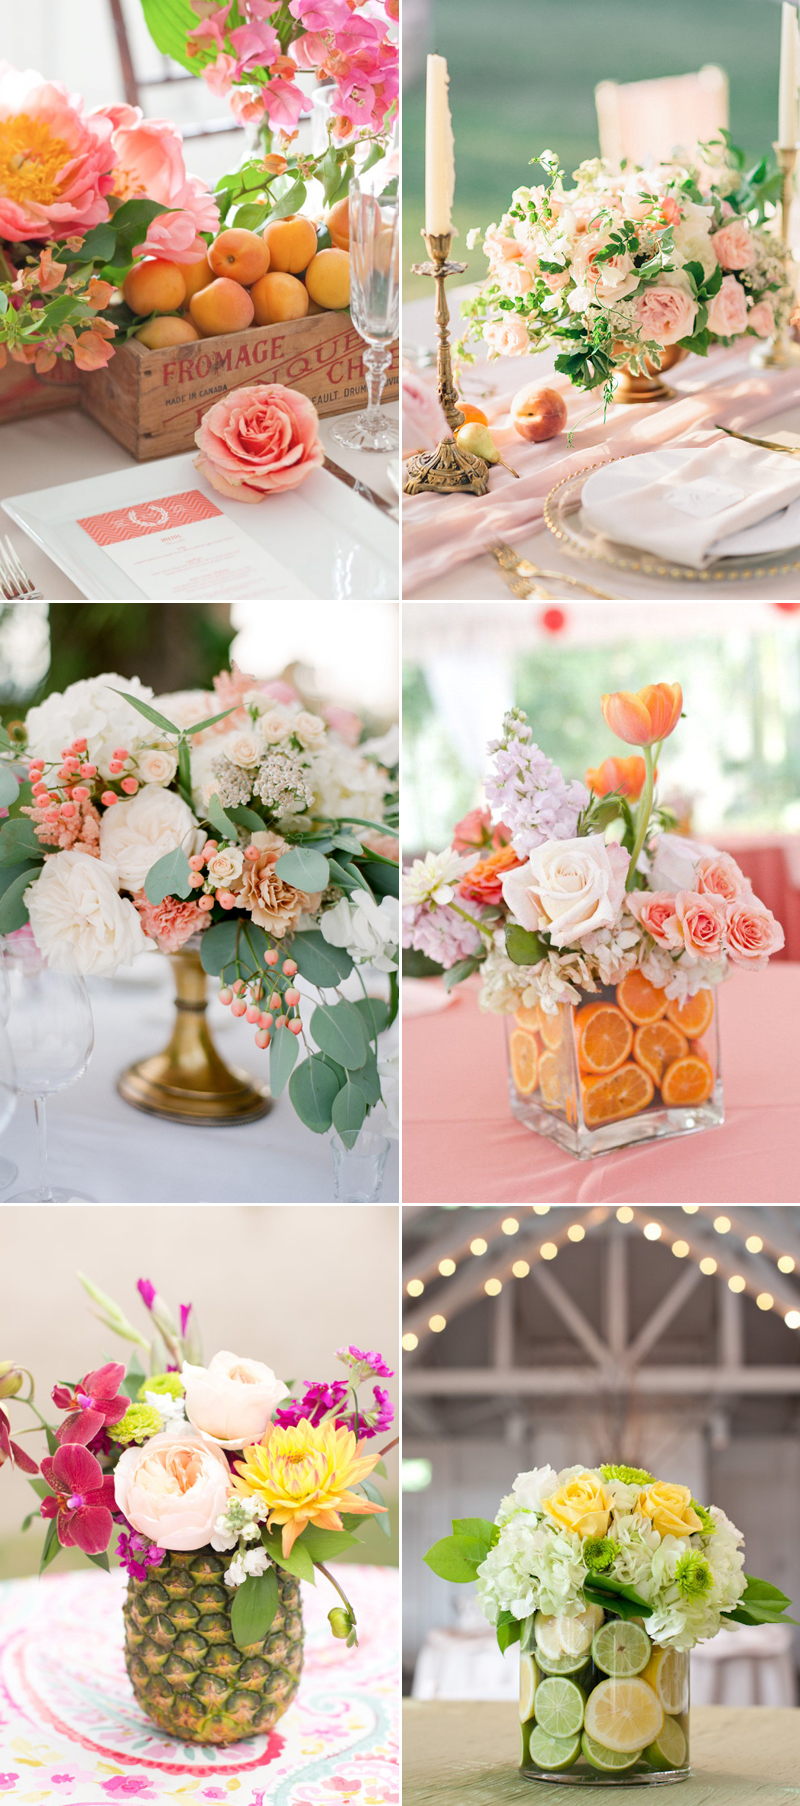 22 Romantic Fresh Flower Centerpiece Ideas For Spring Weddings